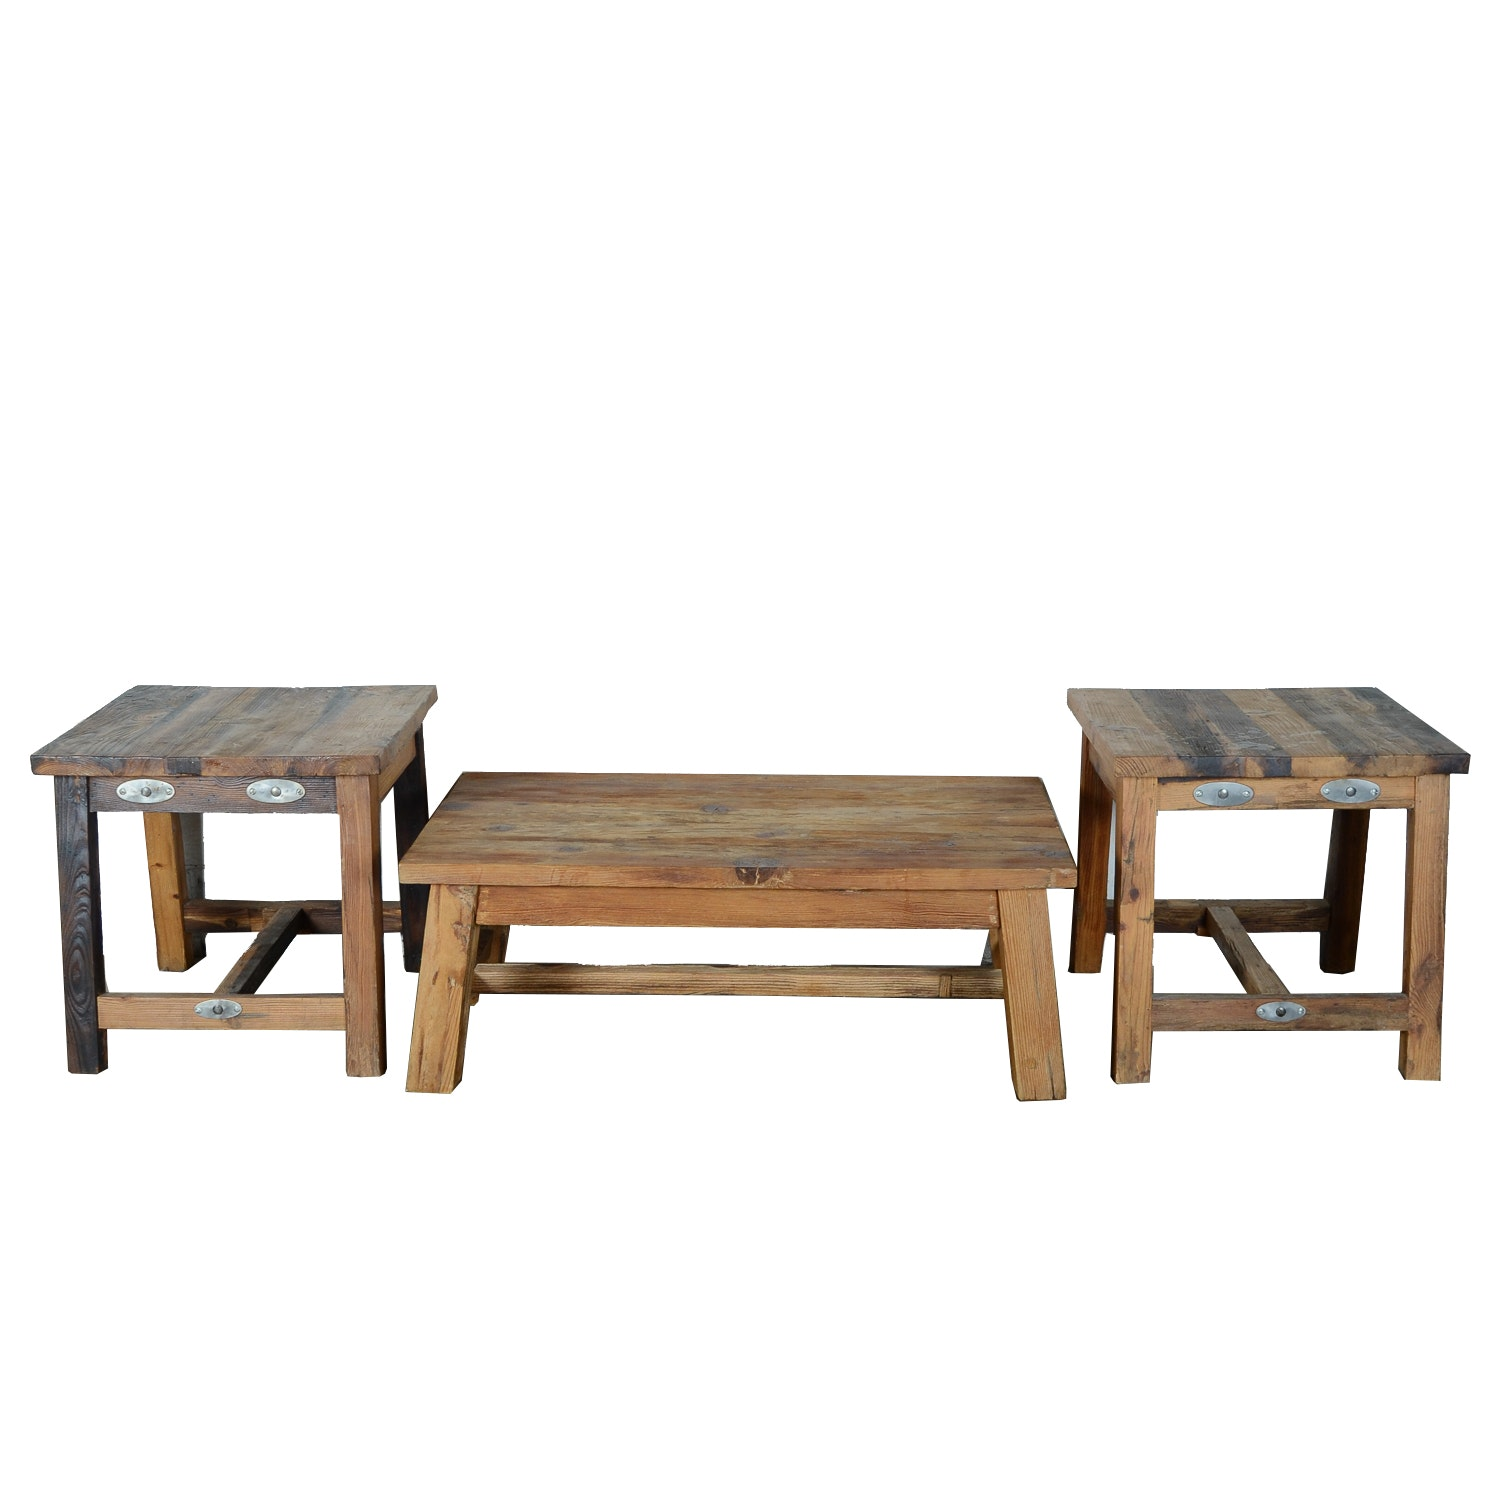 Rustic Pine Coffee Table and Two End Tables EBTH